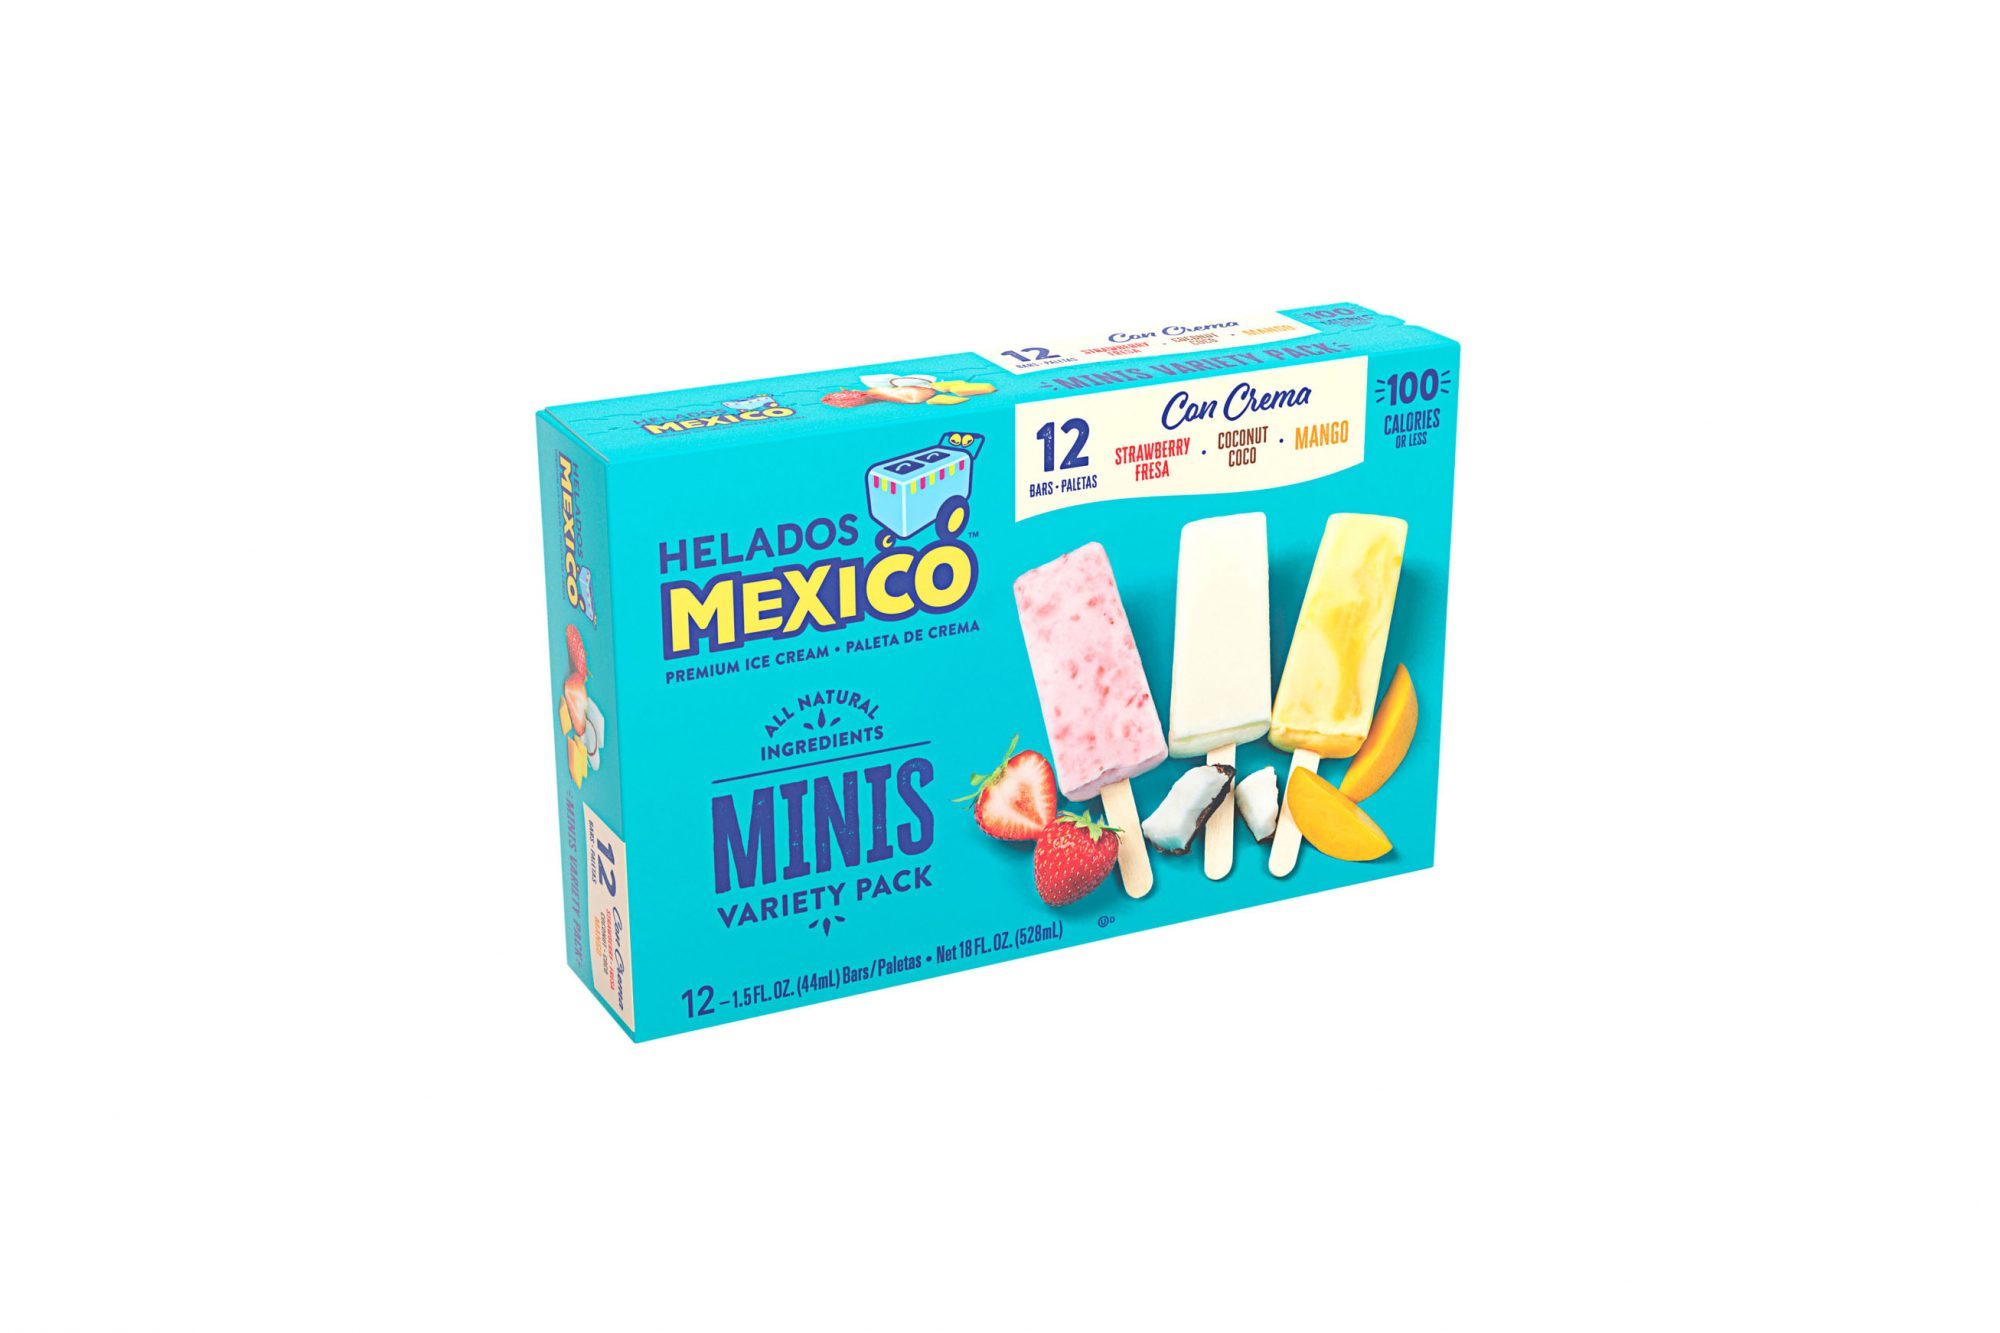 Helados Mexico Minis Variety Pack